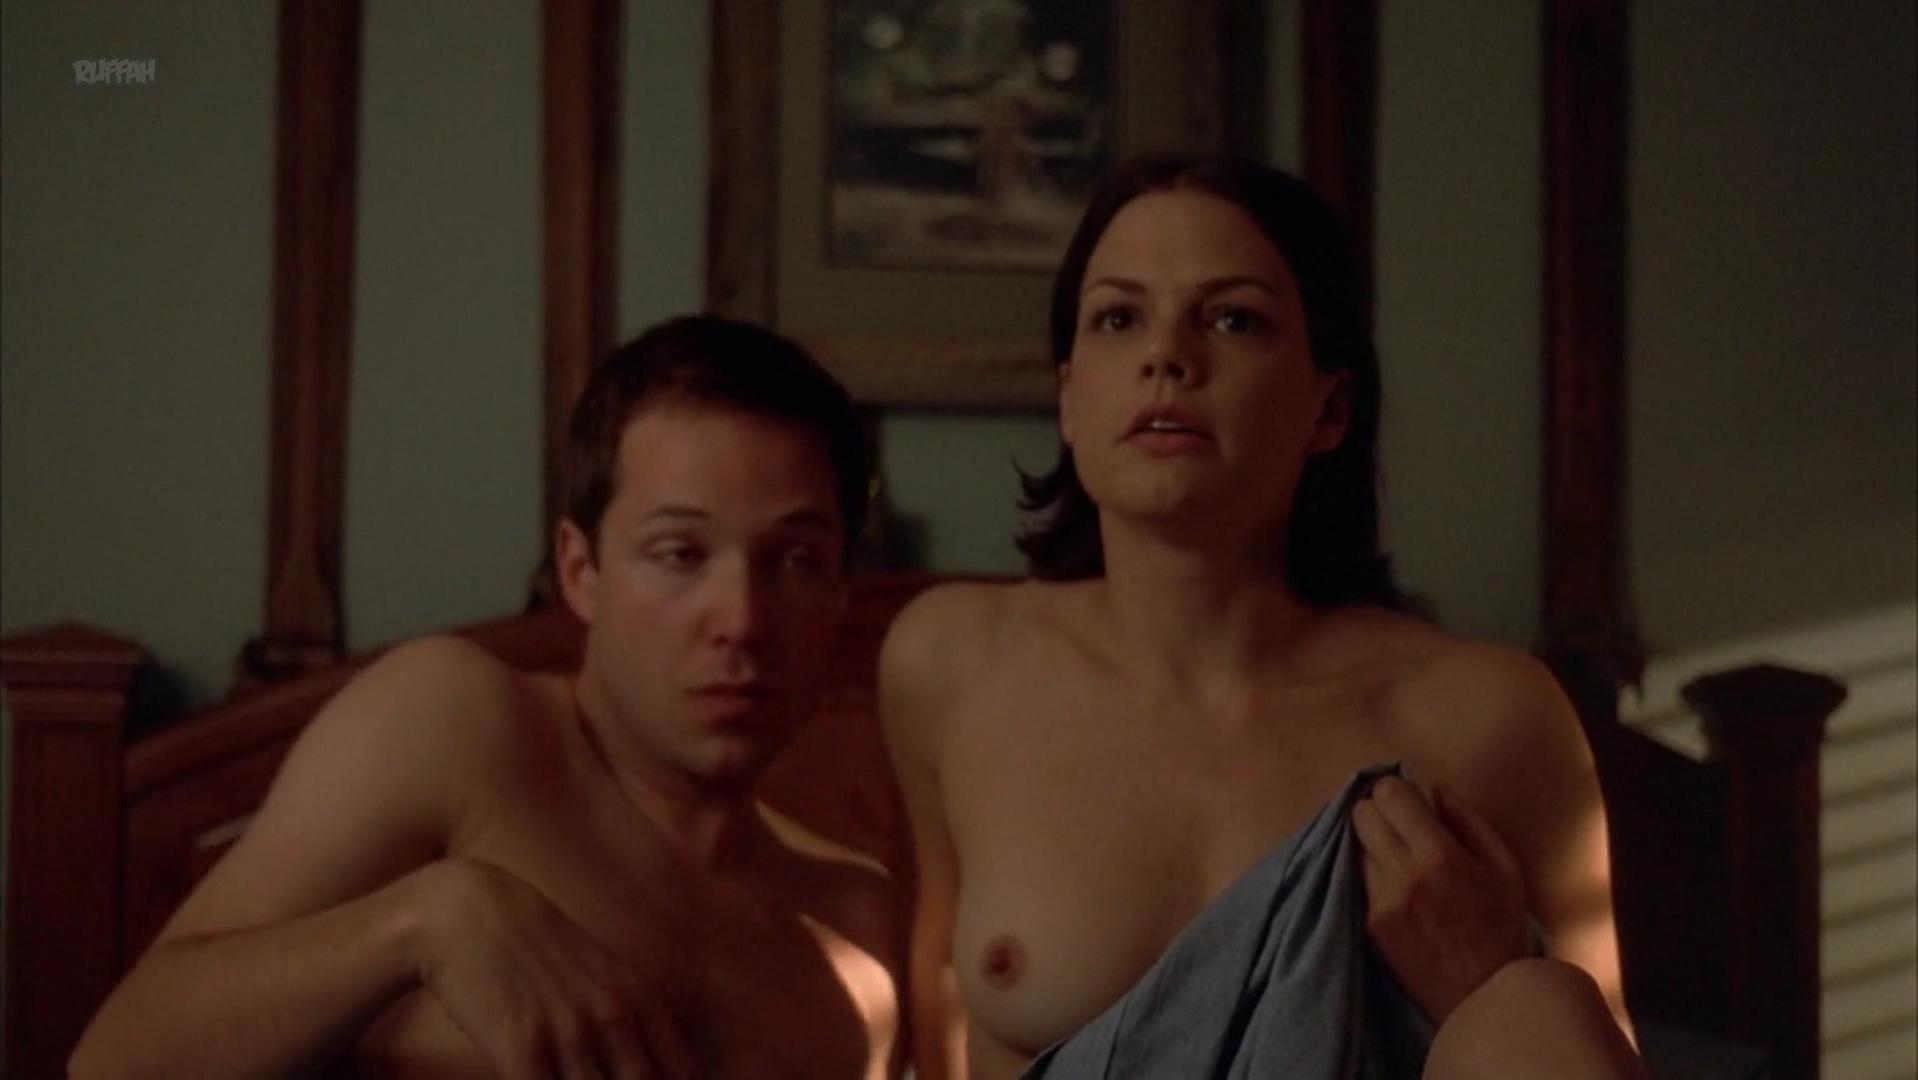 Suzanne Cryer nude - Friends & Lovers (1999)